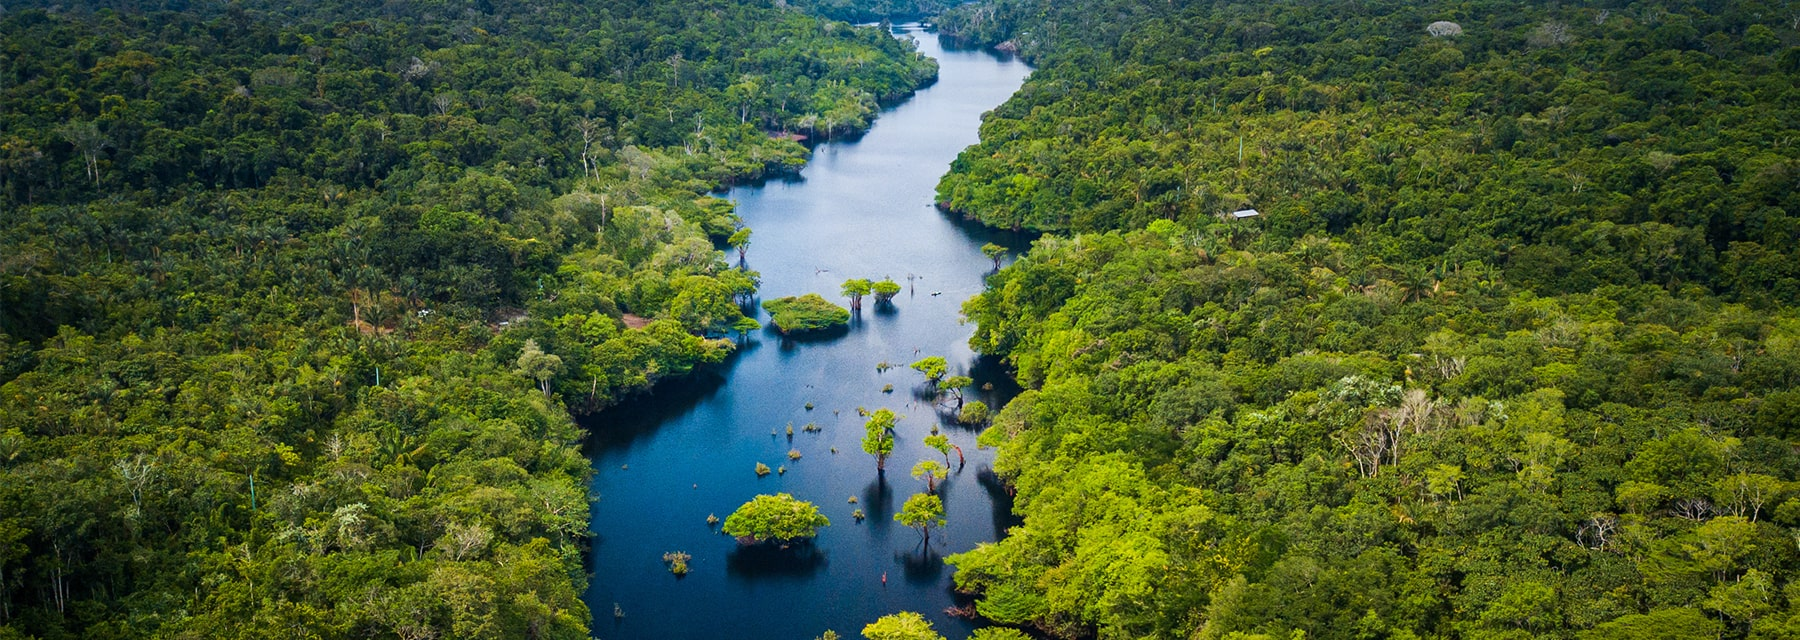 view of rainforest with river